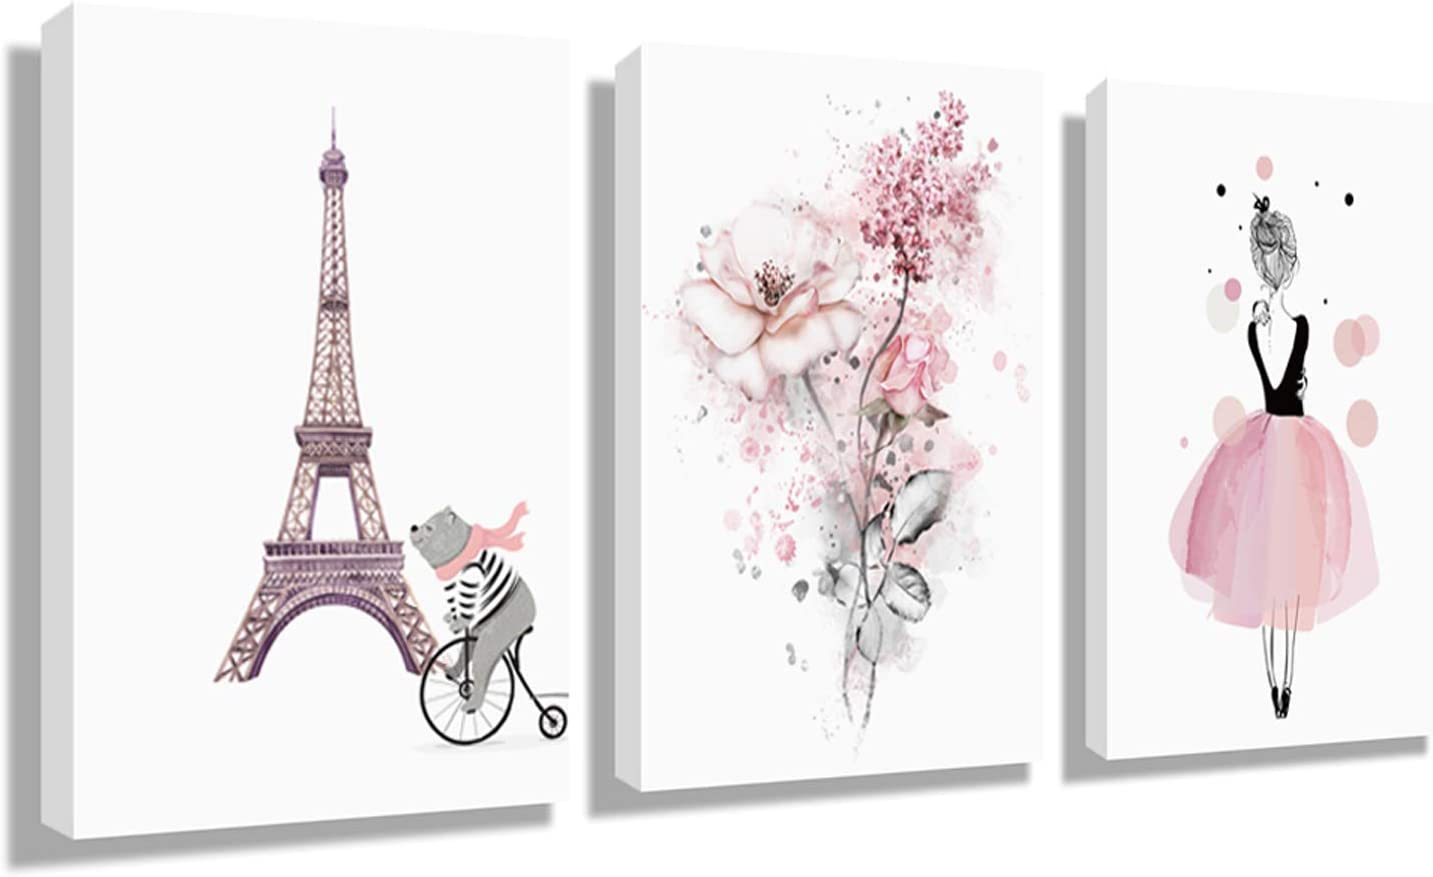 Wall Art Eiffel Tower living Room Decor - Murals Hanging Paintings Decorative Art Wall Home Decoration Painting 12x16Inch x 3Panel